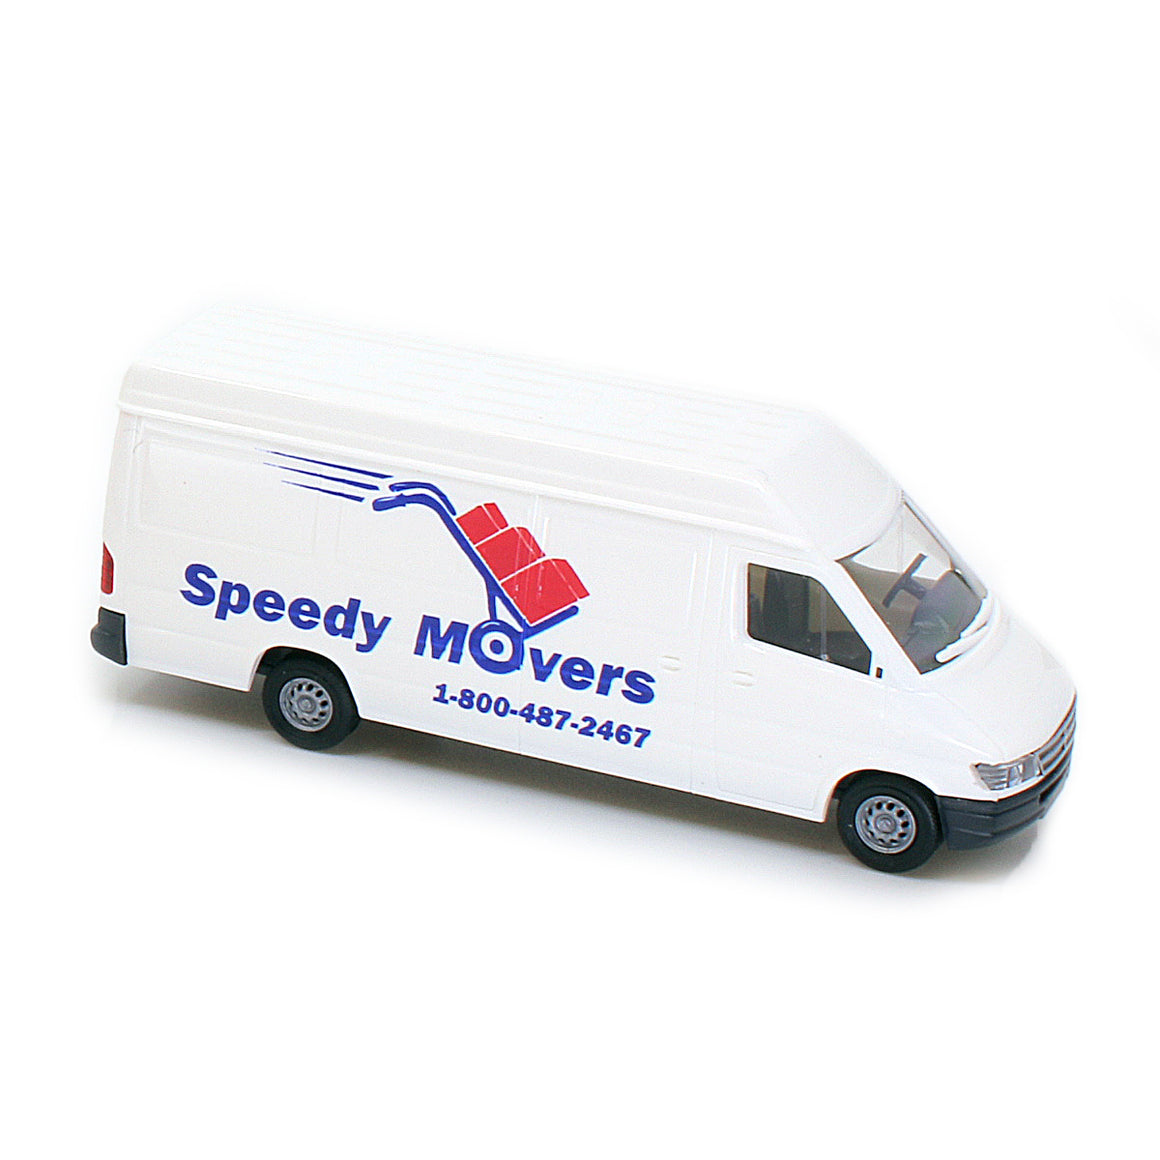 HO Scale: Modern Sprinter Van - Speedy Movers